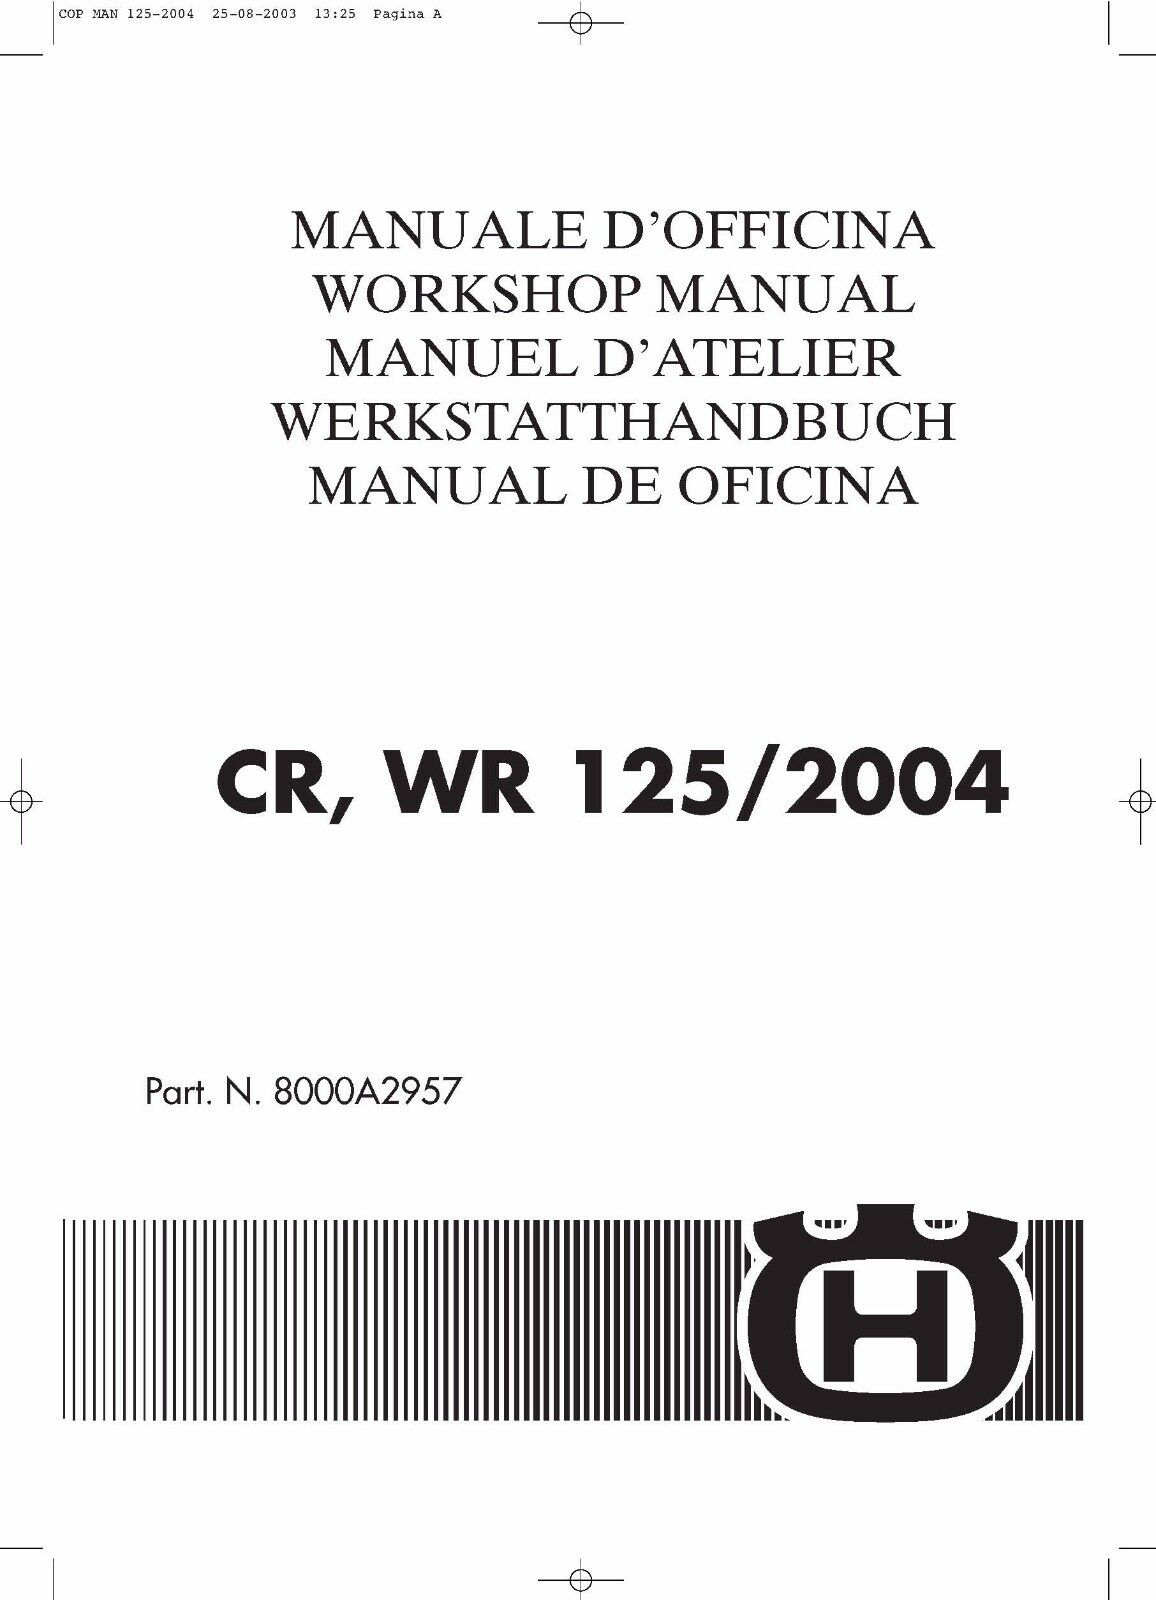 Husqvarna workshop service manual 2004 CR 125 & WR 125 1 of 12Only 1  available ...